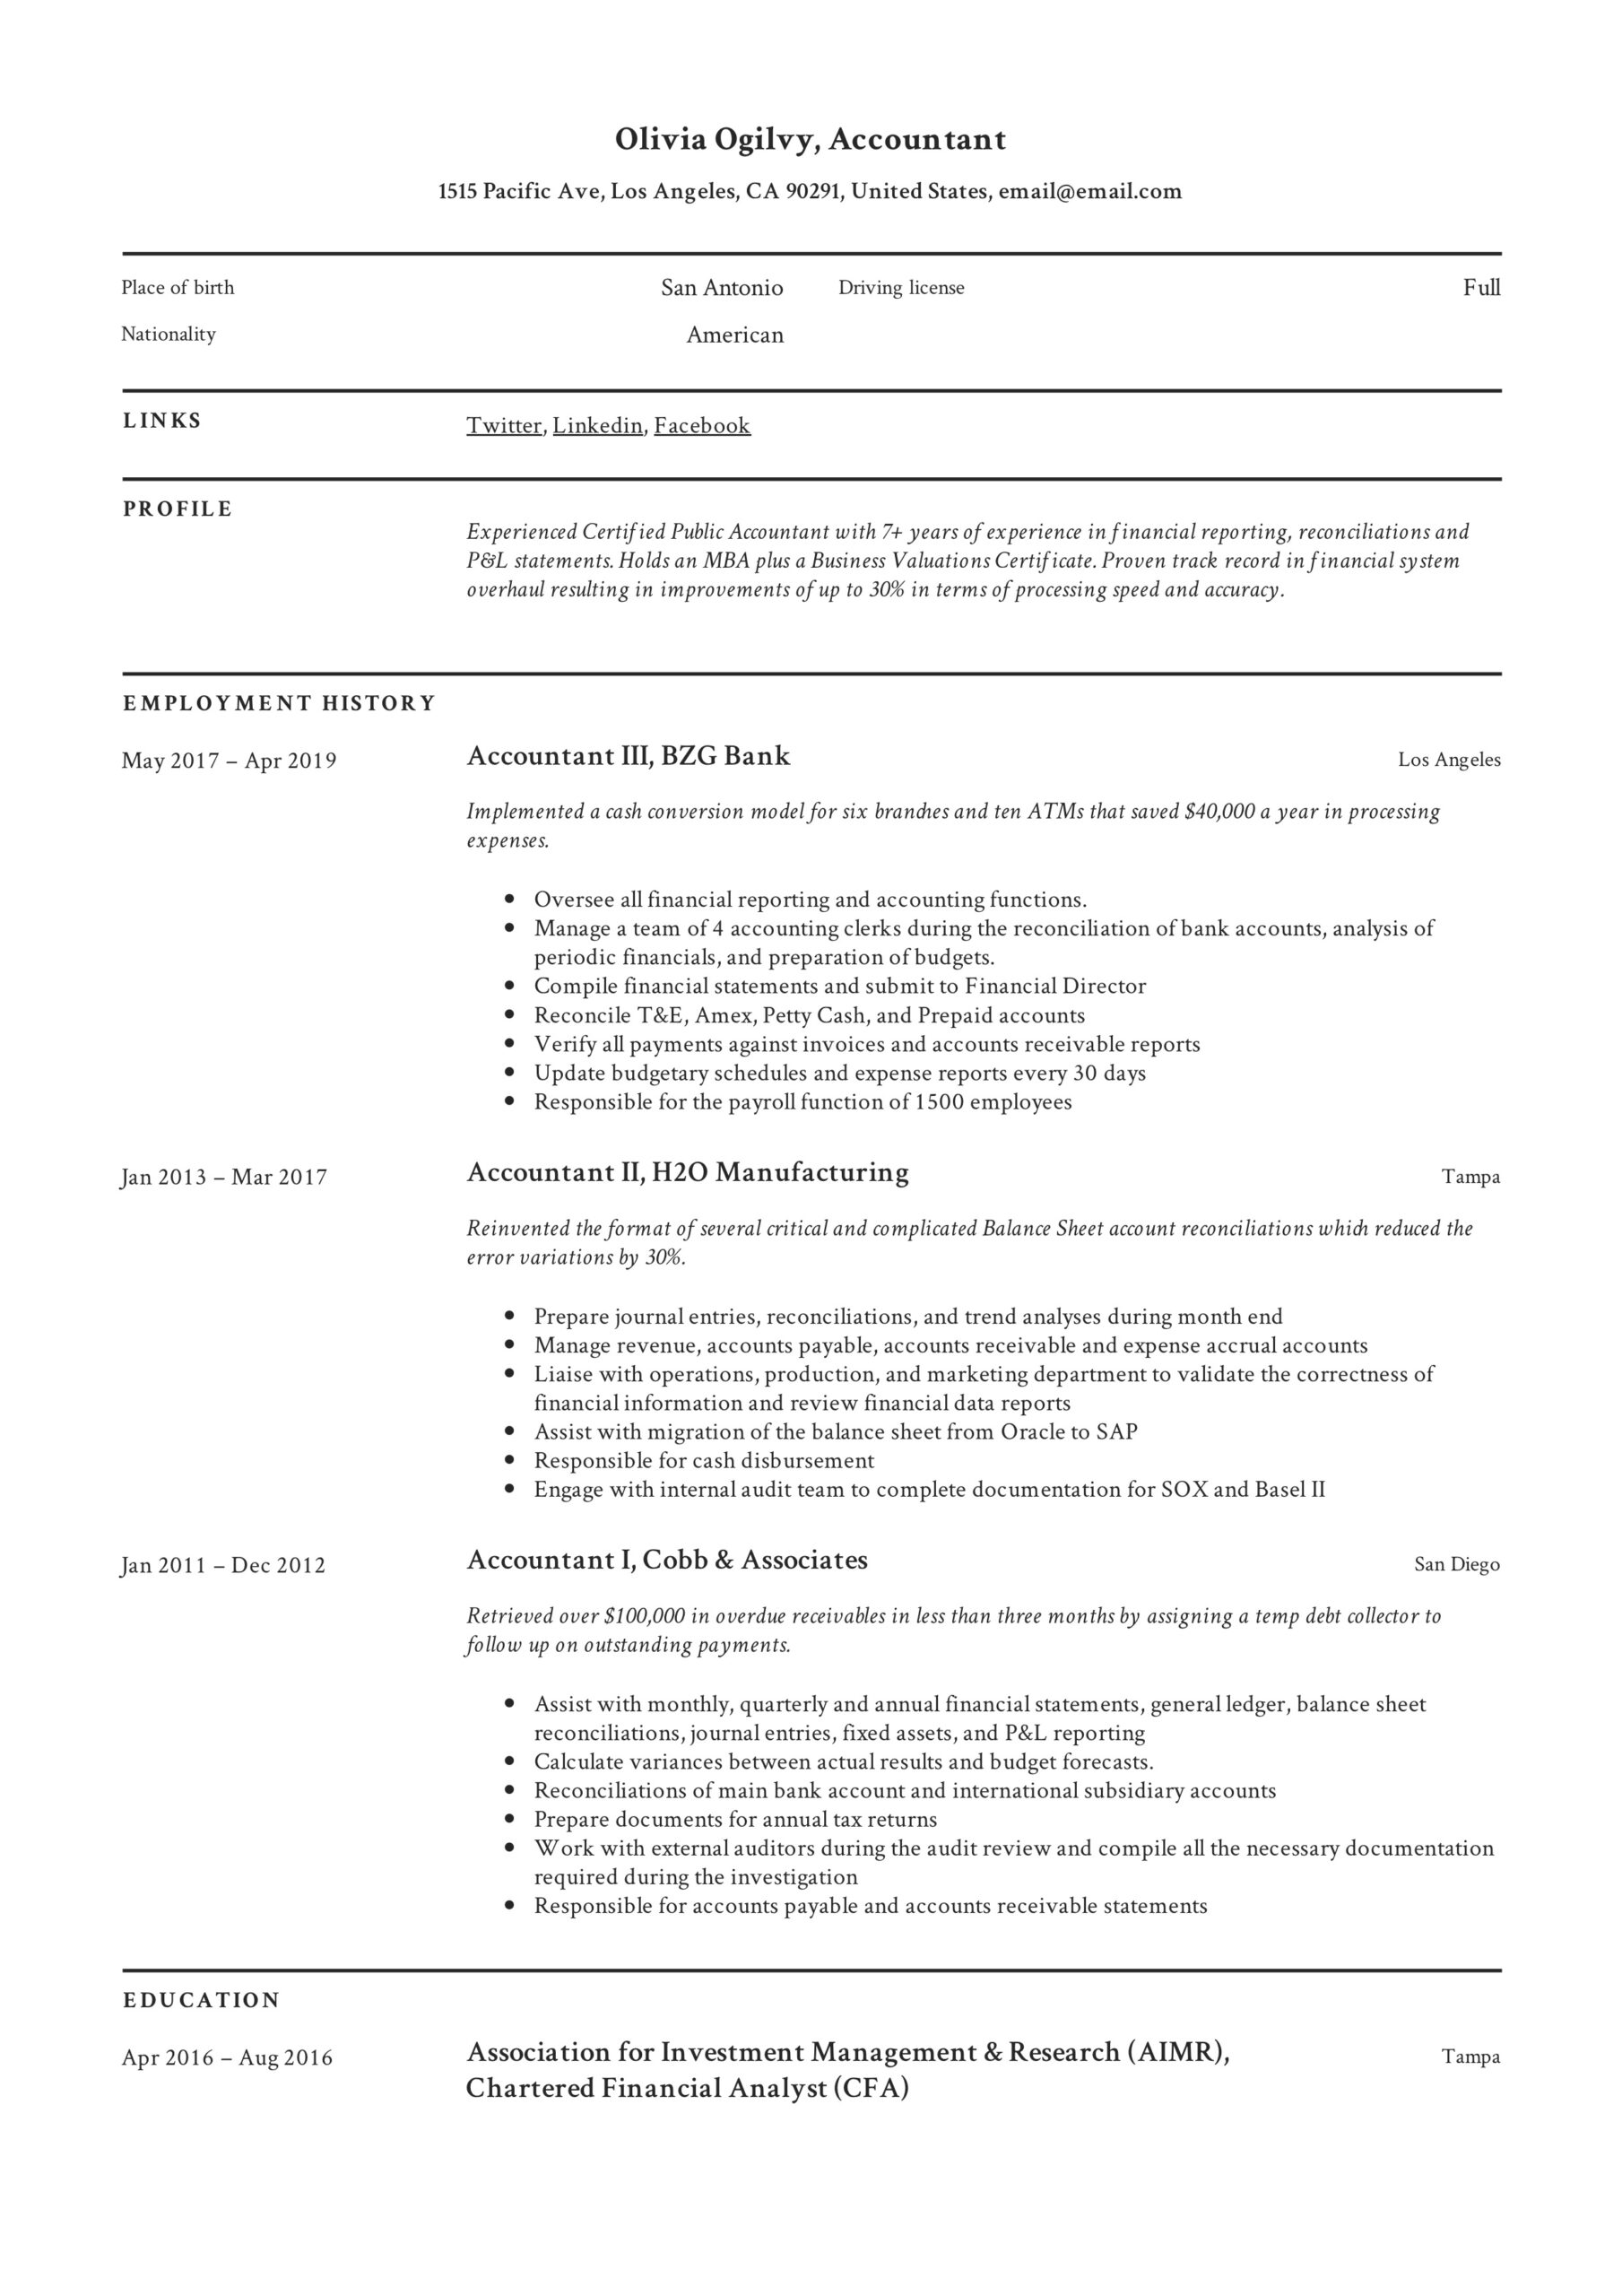 accountant resume writing guide templates pdf latest format for olivia ogilvy personal Resume Latest Resume Format For Accountant